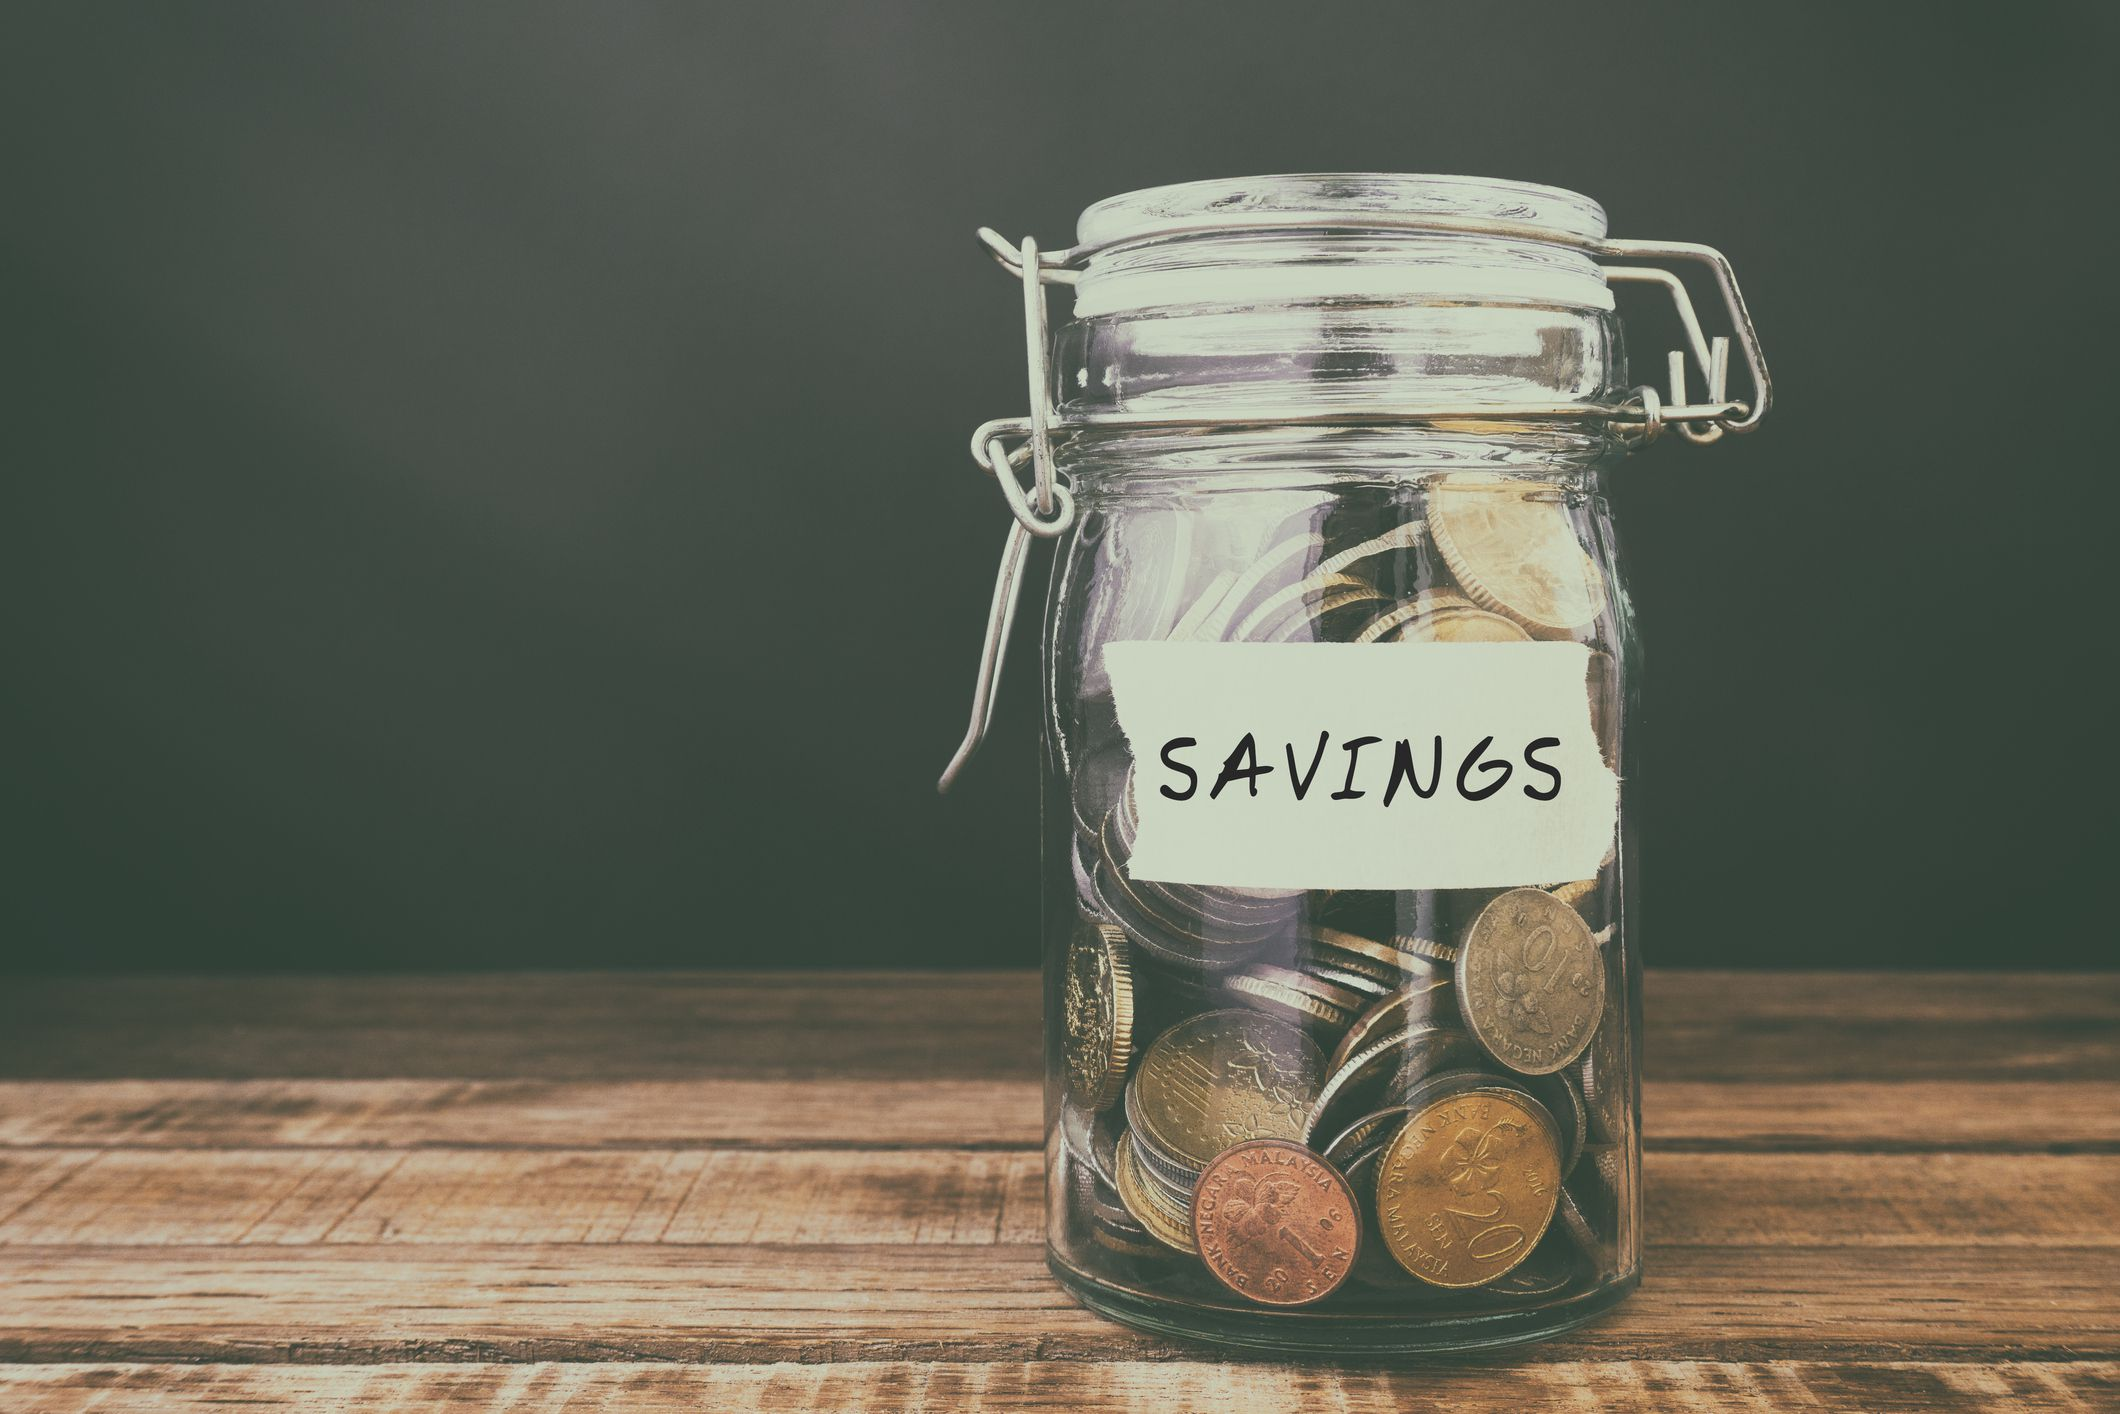 Best savings options 2019